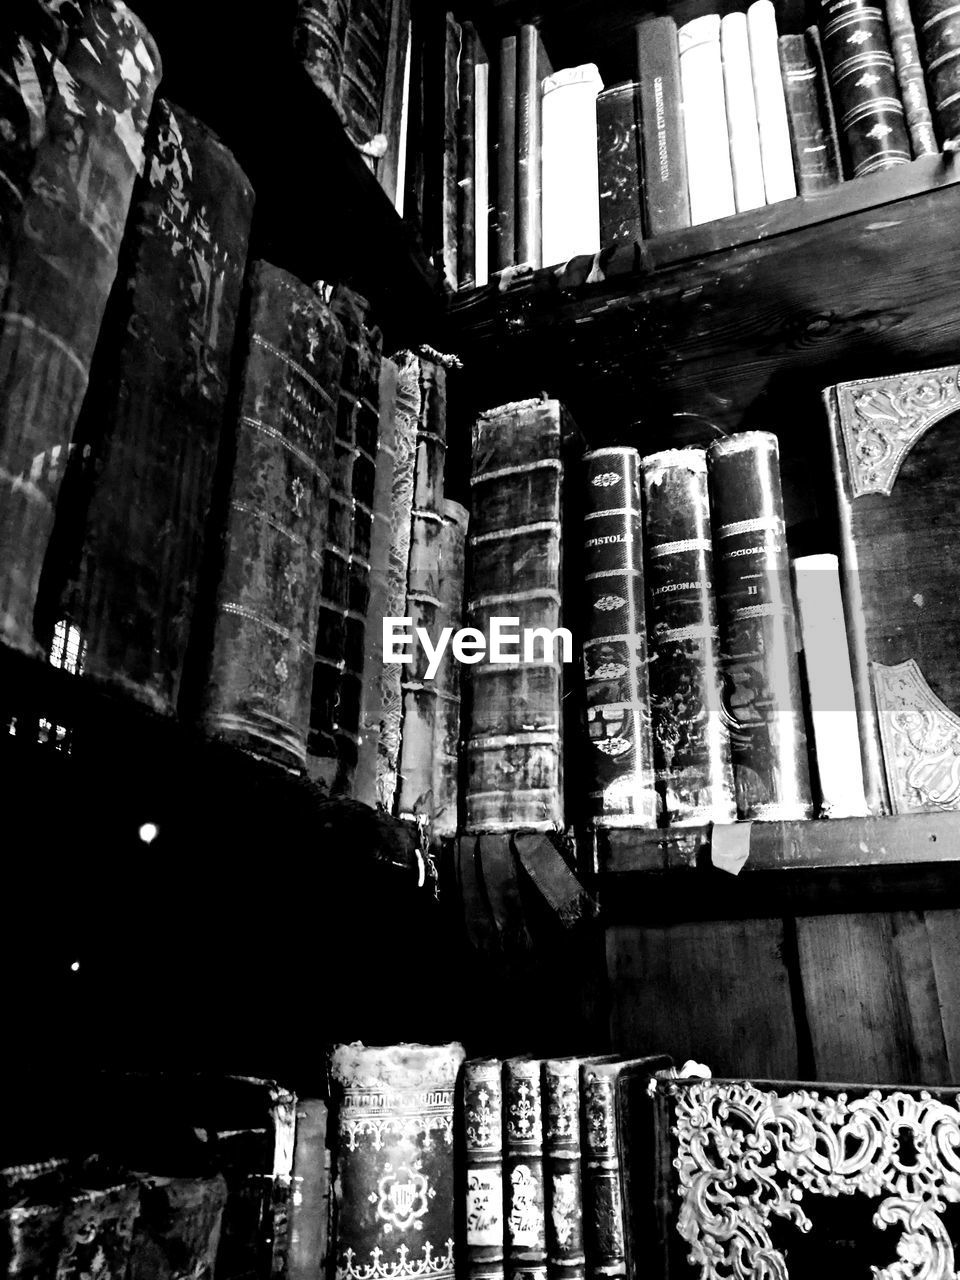 indoors, no people, low angle view, shelf, architecture, built structure, day, close-up, bookshelf